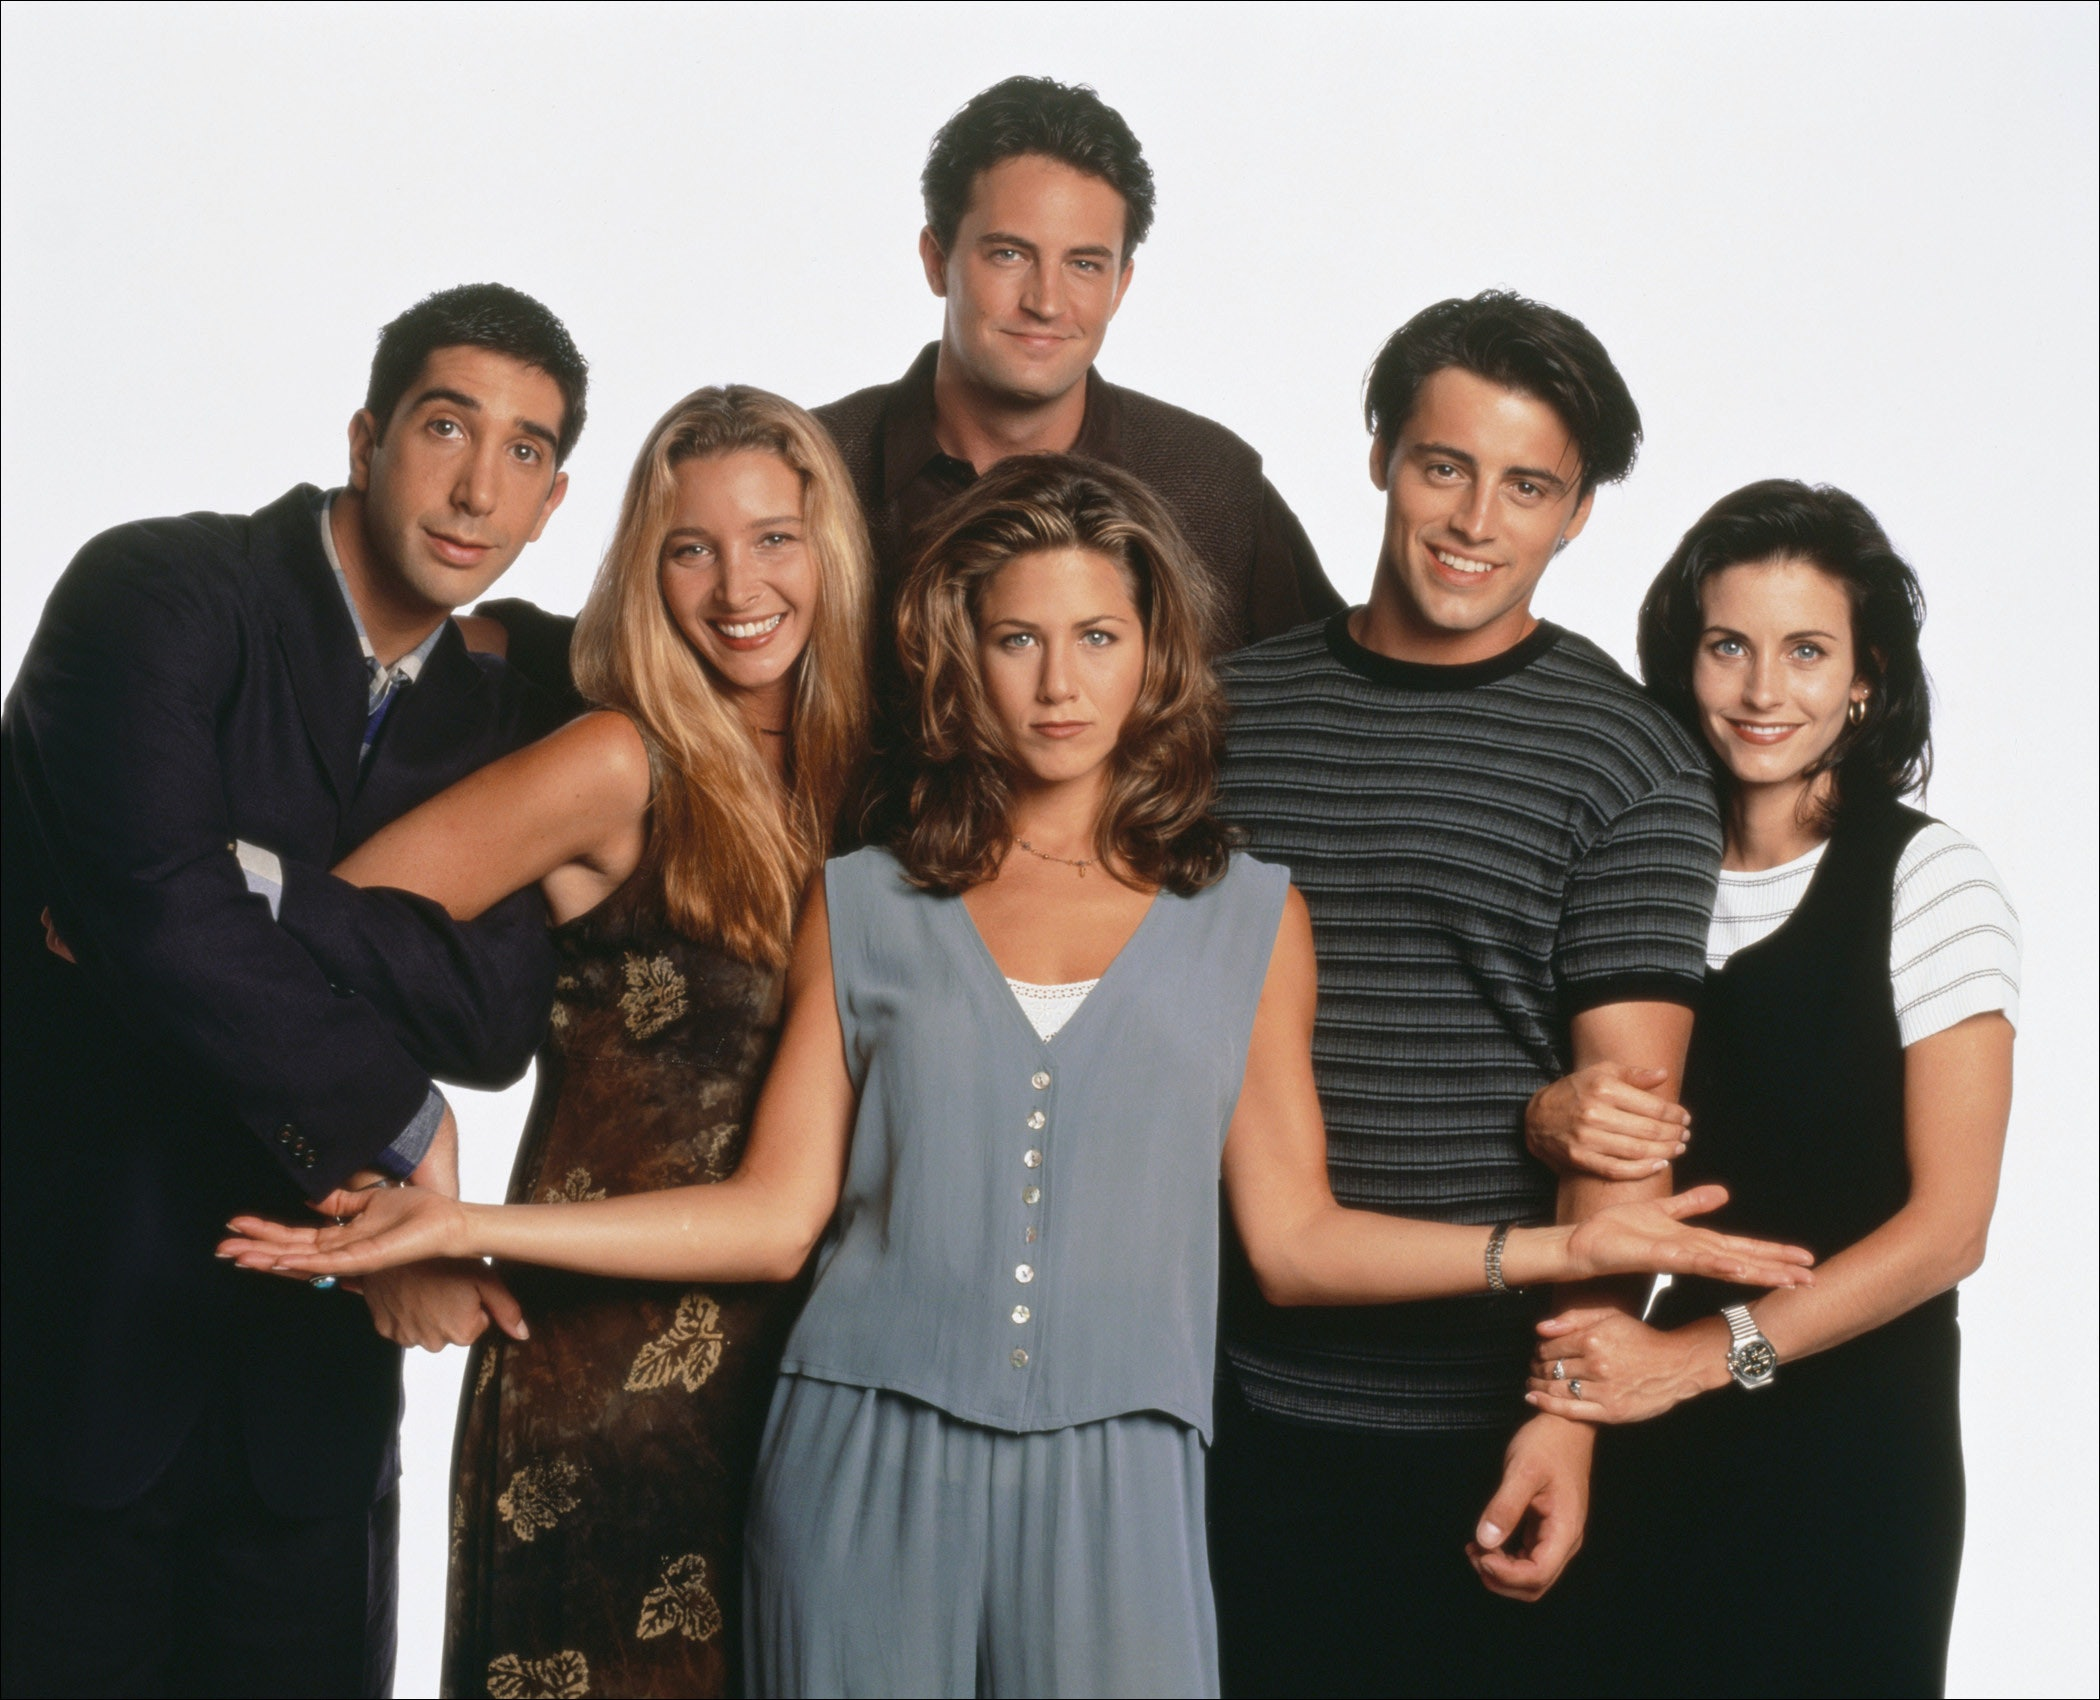 11 worst 'friends' episodes ever that real fans will skip when the